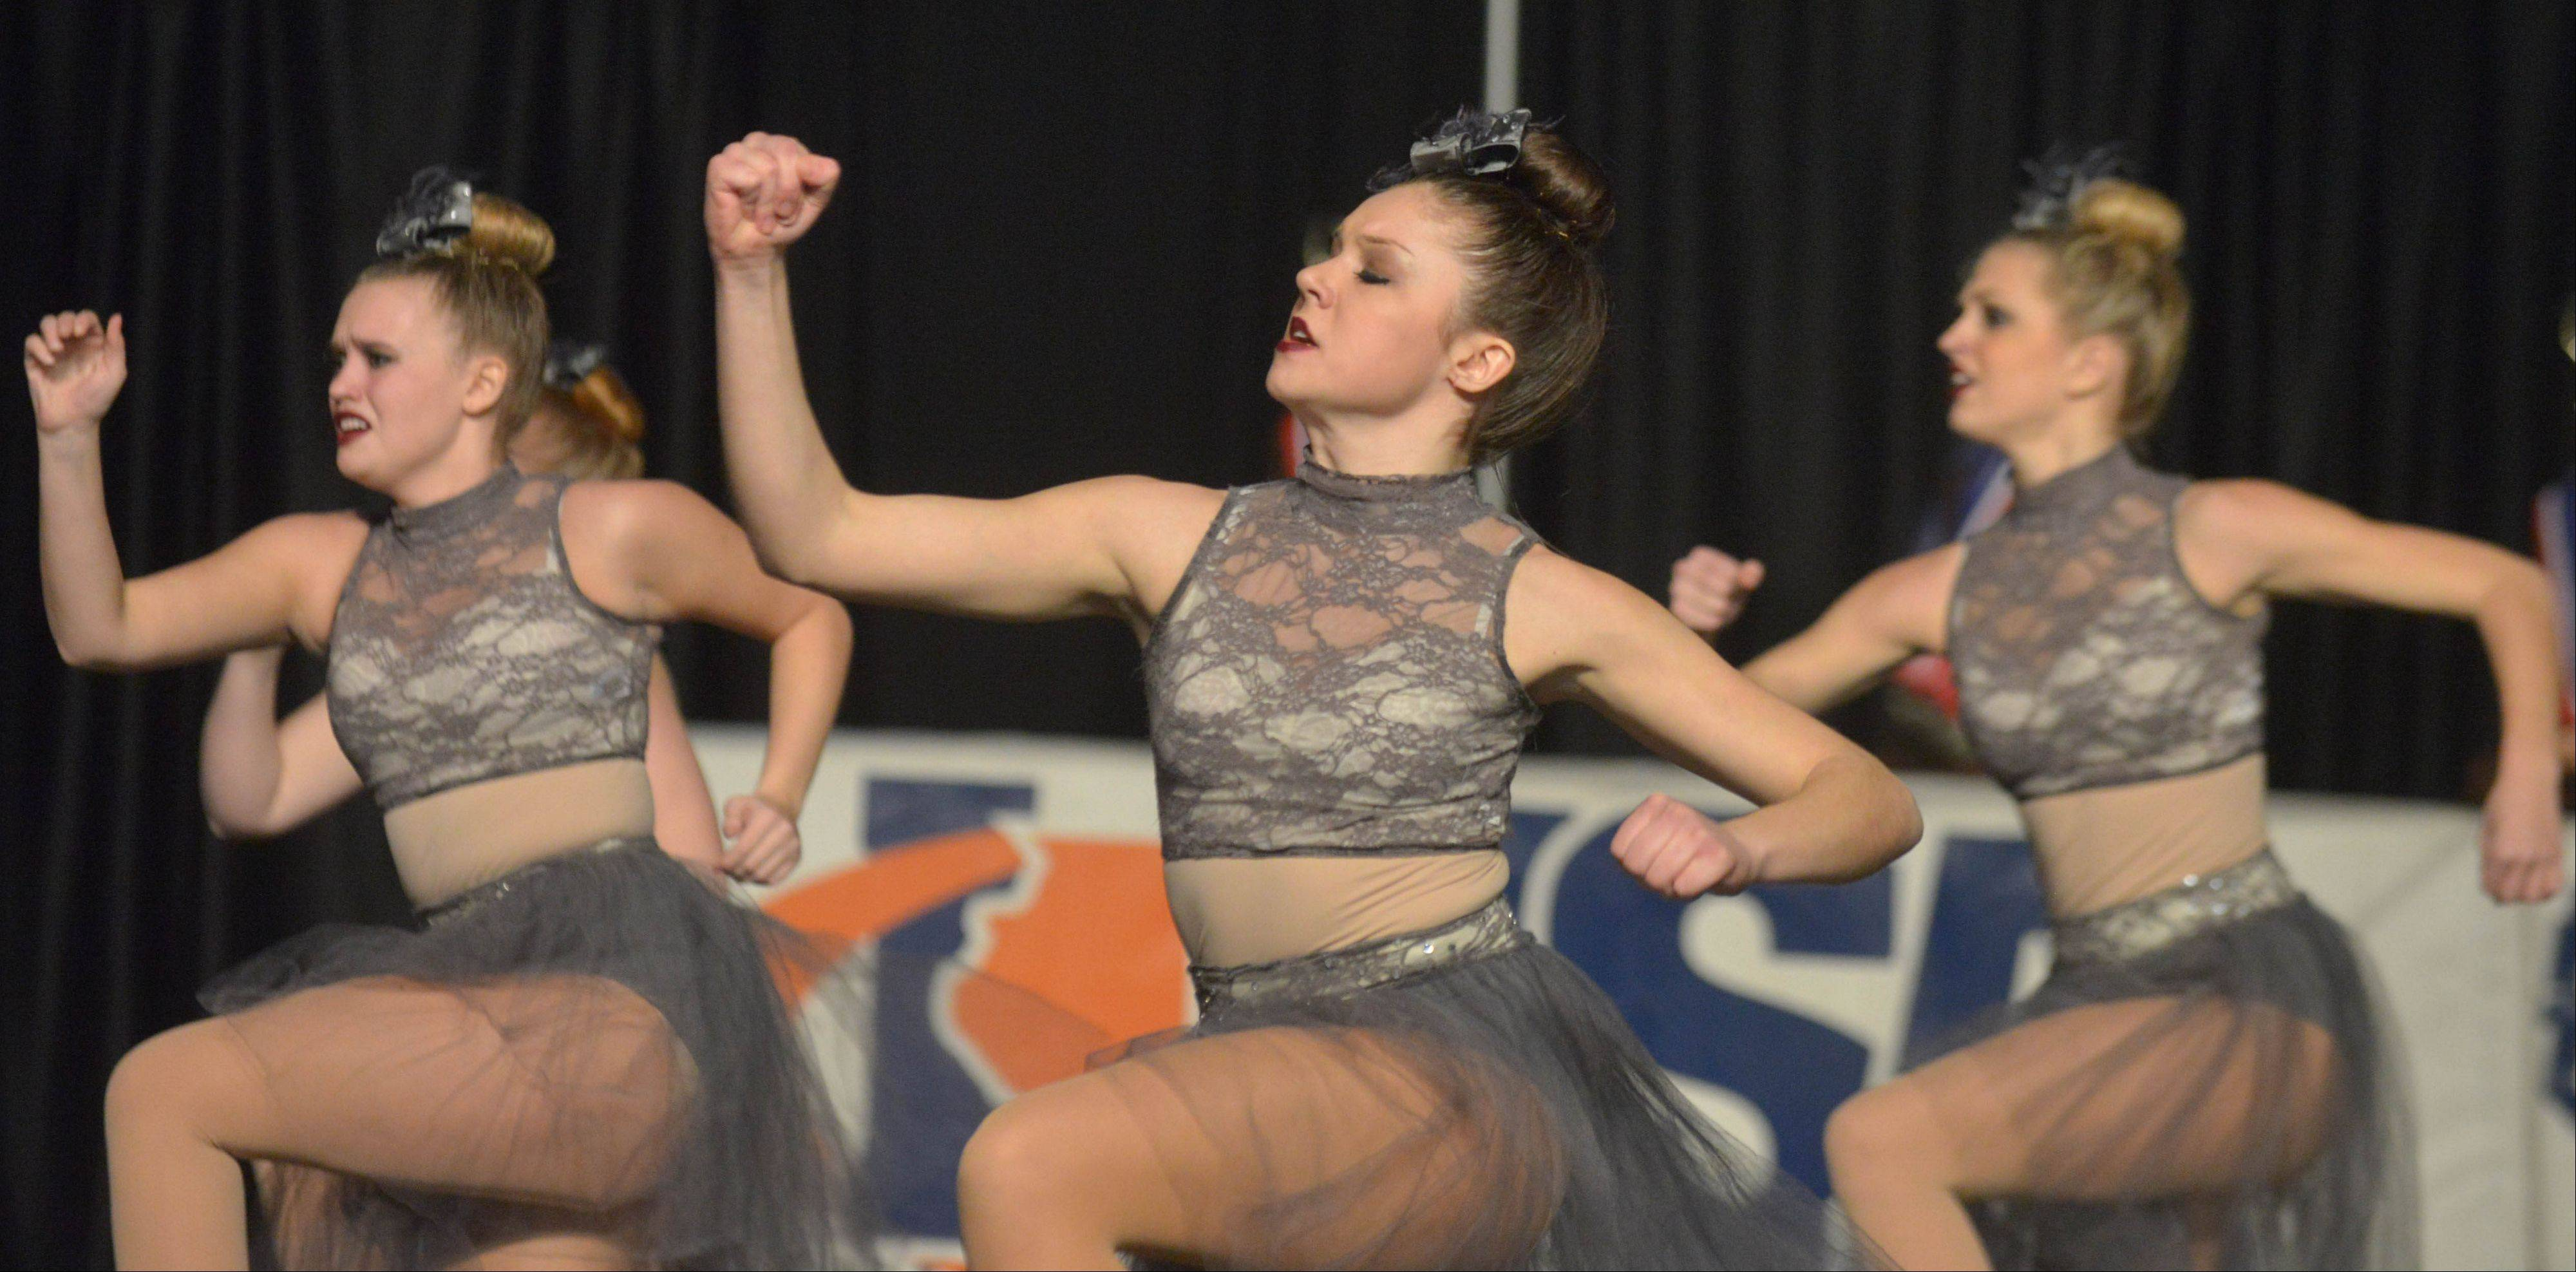 The South Elgin dance team takes part in the Competitive Dance preliminary round Friday at U.S. Cellular Coliseum in Bloomington.